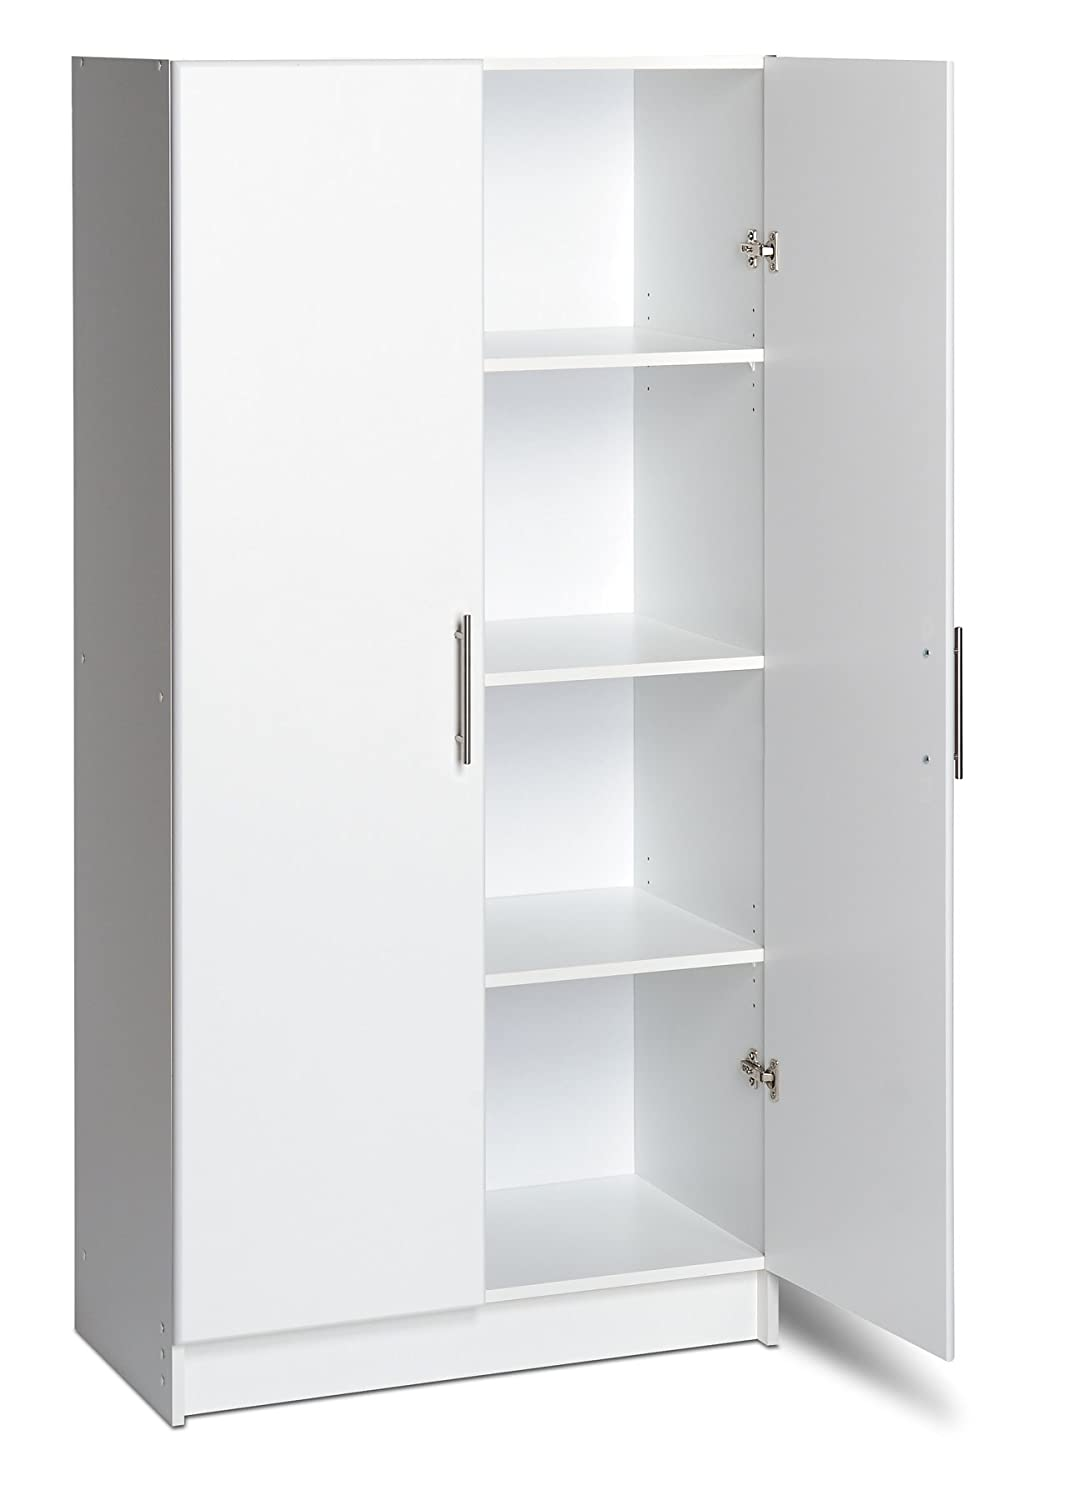 Prepac elite collection storage cabinet 16 x 32 x 65 inches1 fixed and